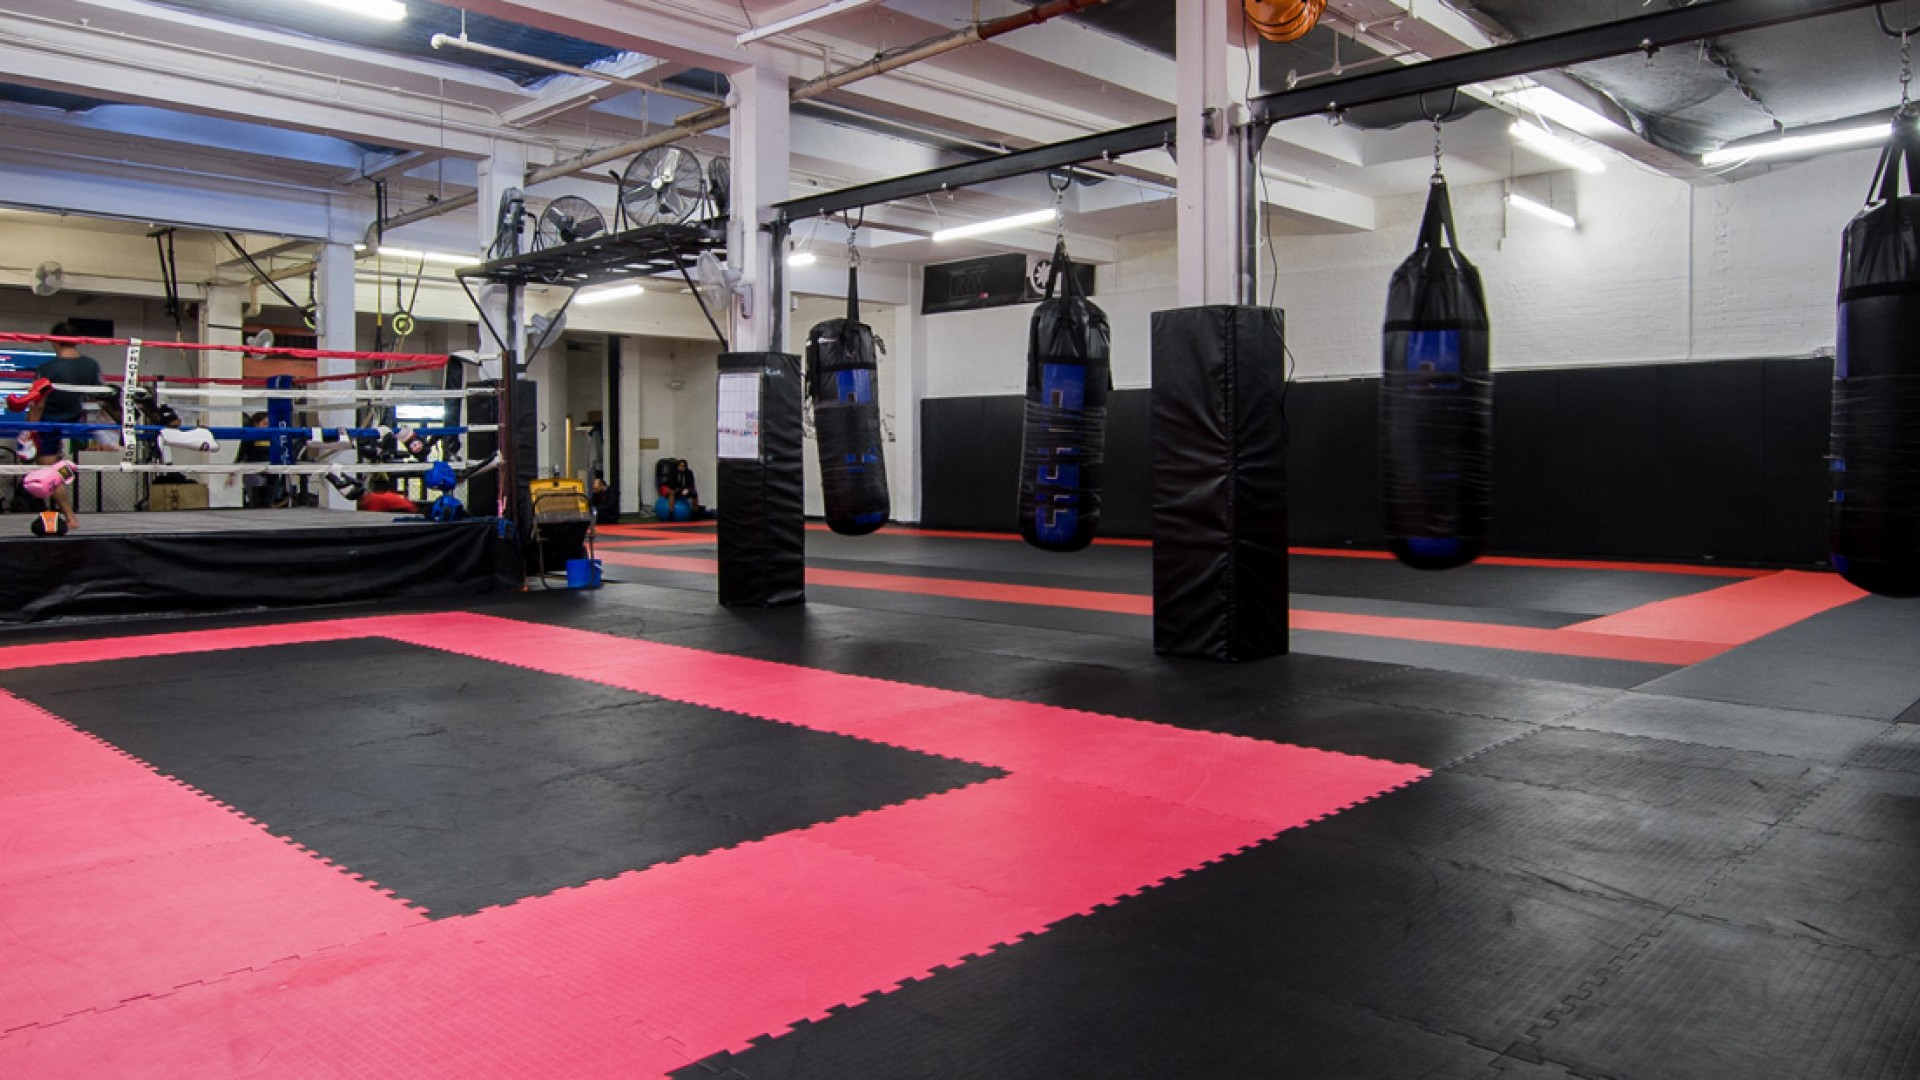 Fighting gym in houses do jiaq win